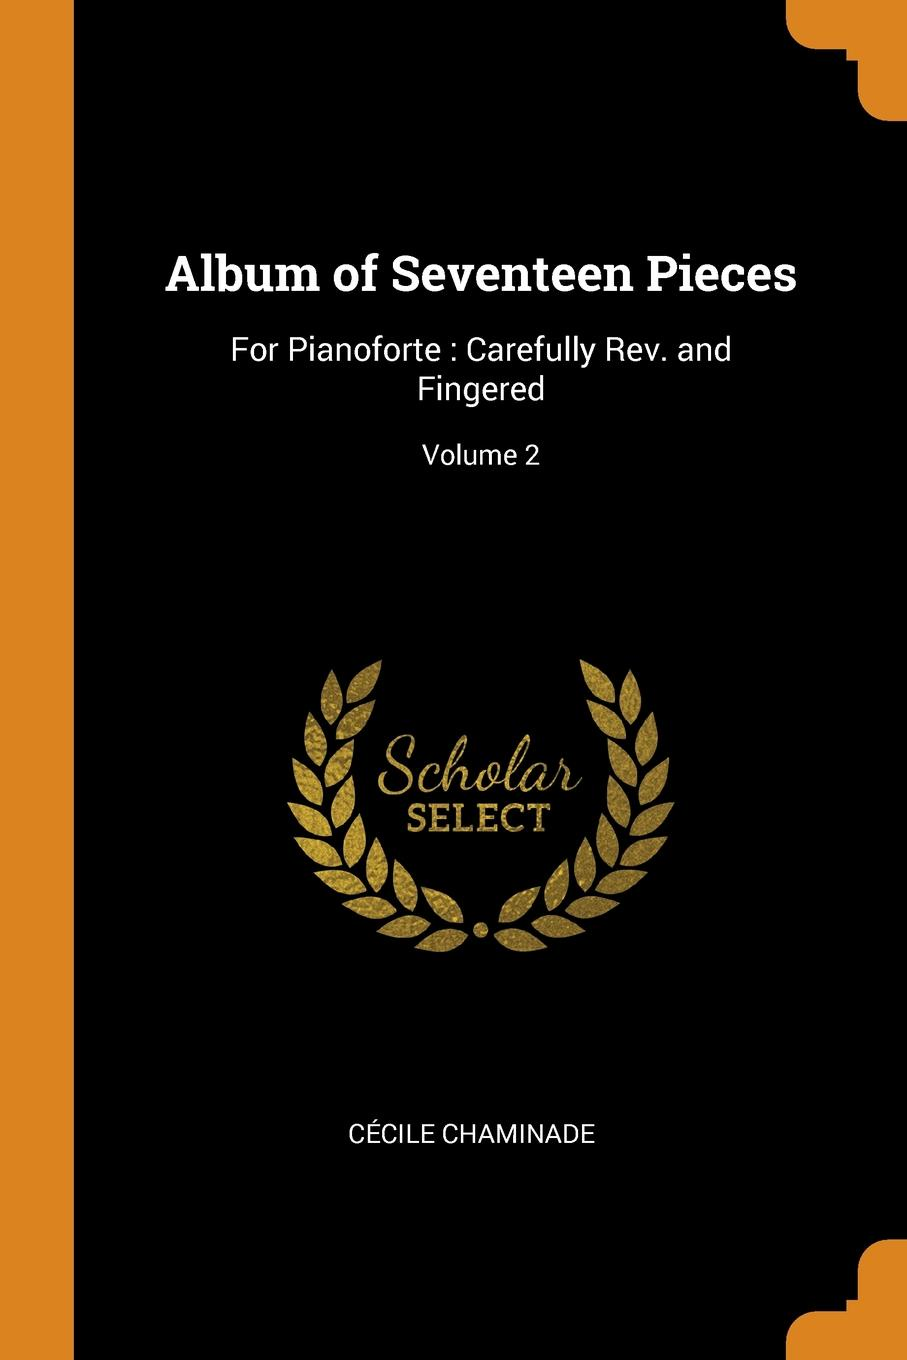 Cécile Chaminade Album of Seventeen Pieces. For Pianoforte : Carefully Rev. and Fingered; Volume 2